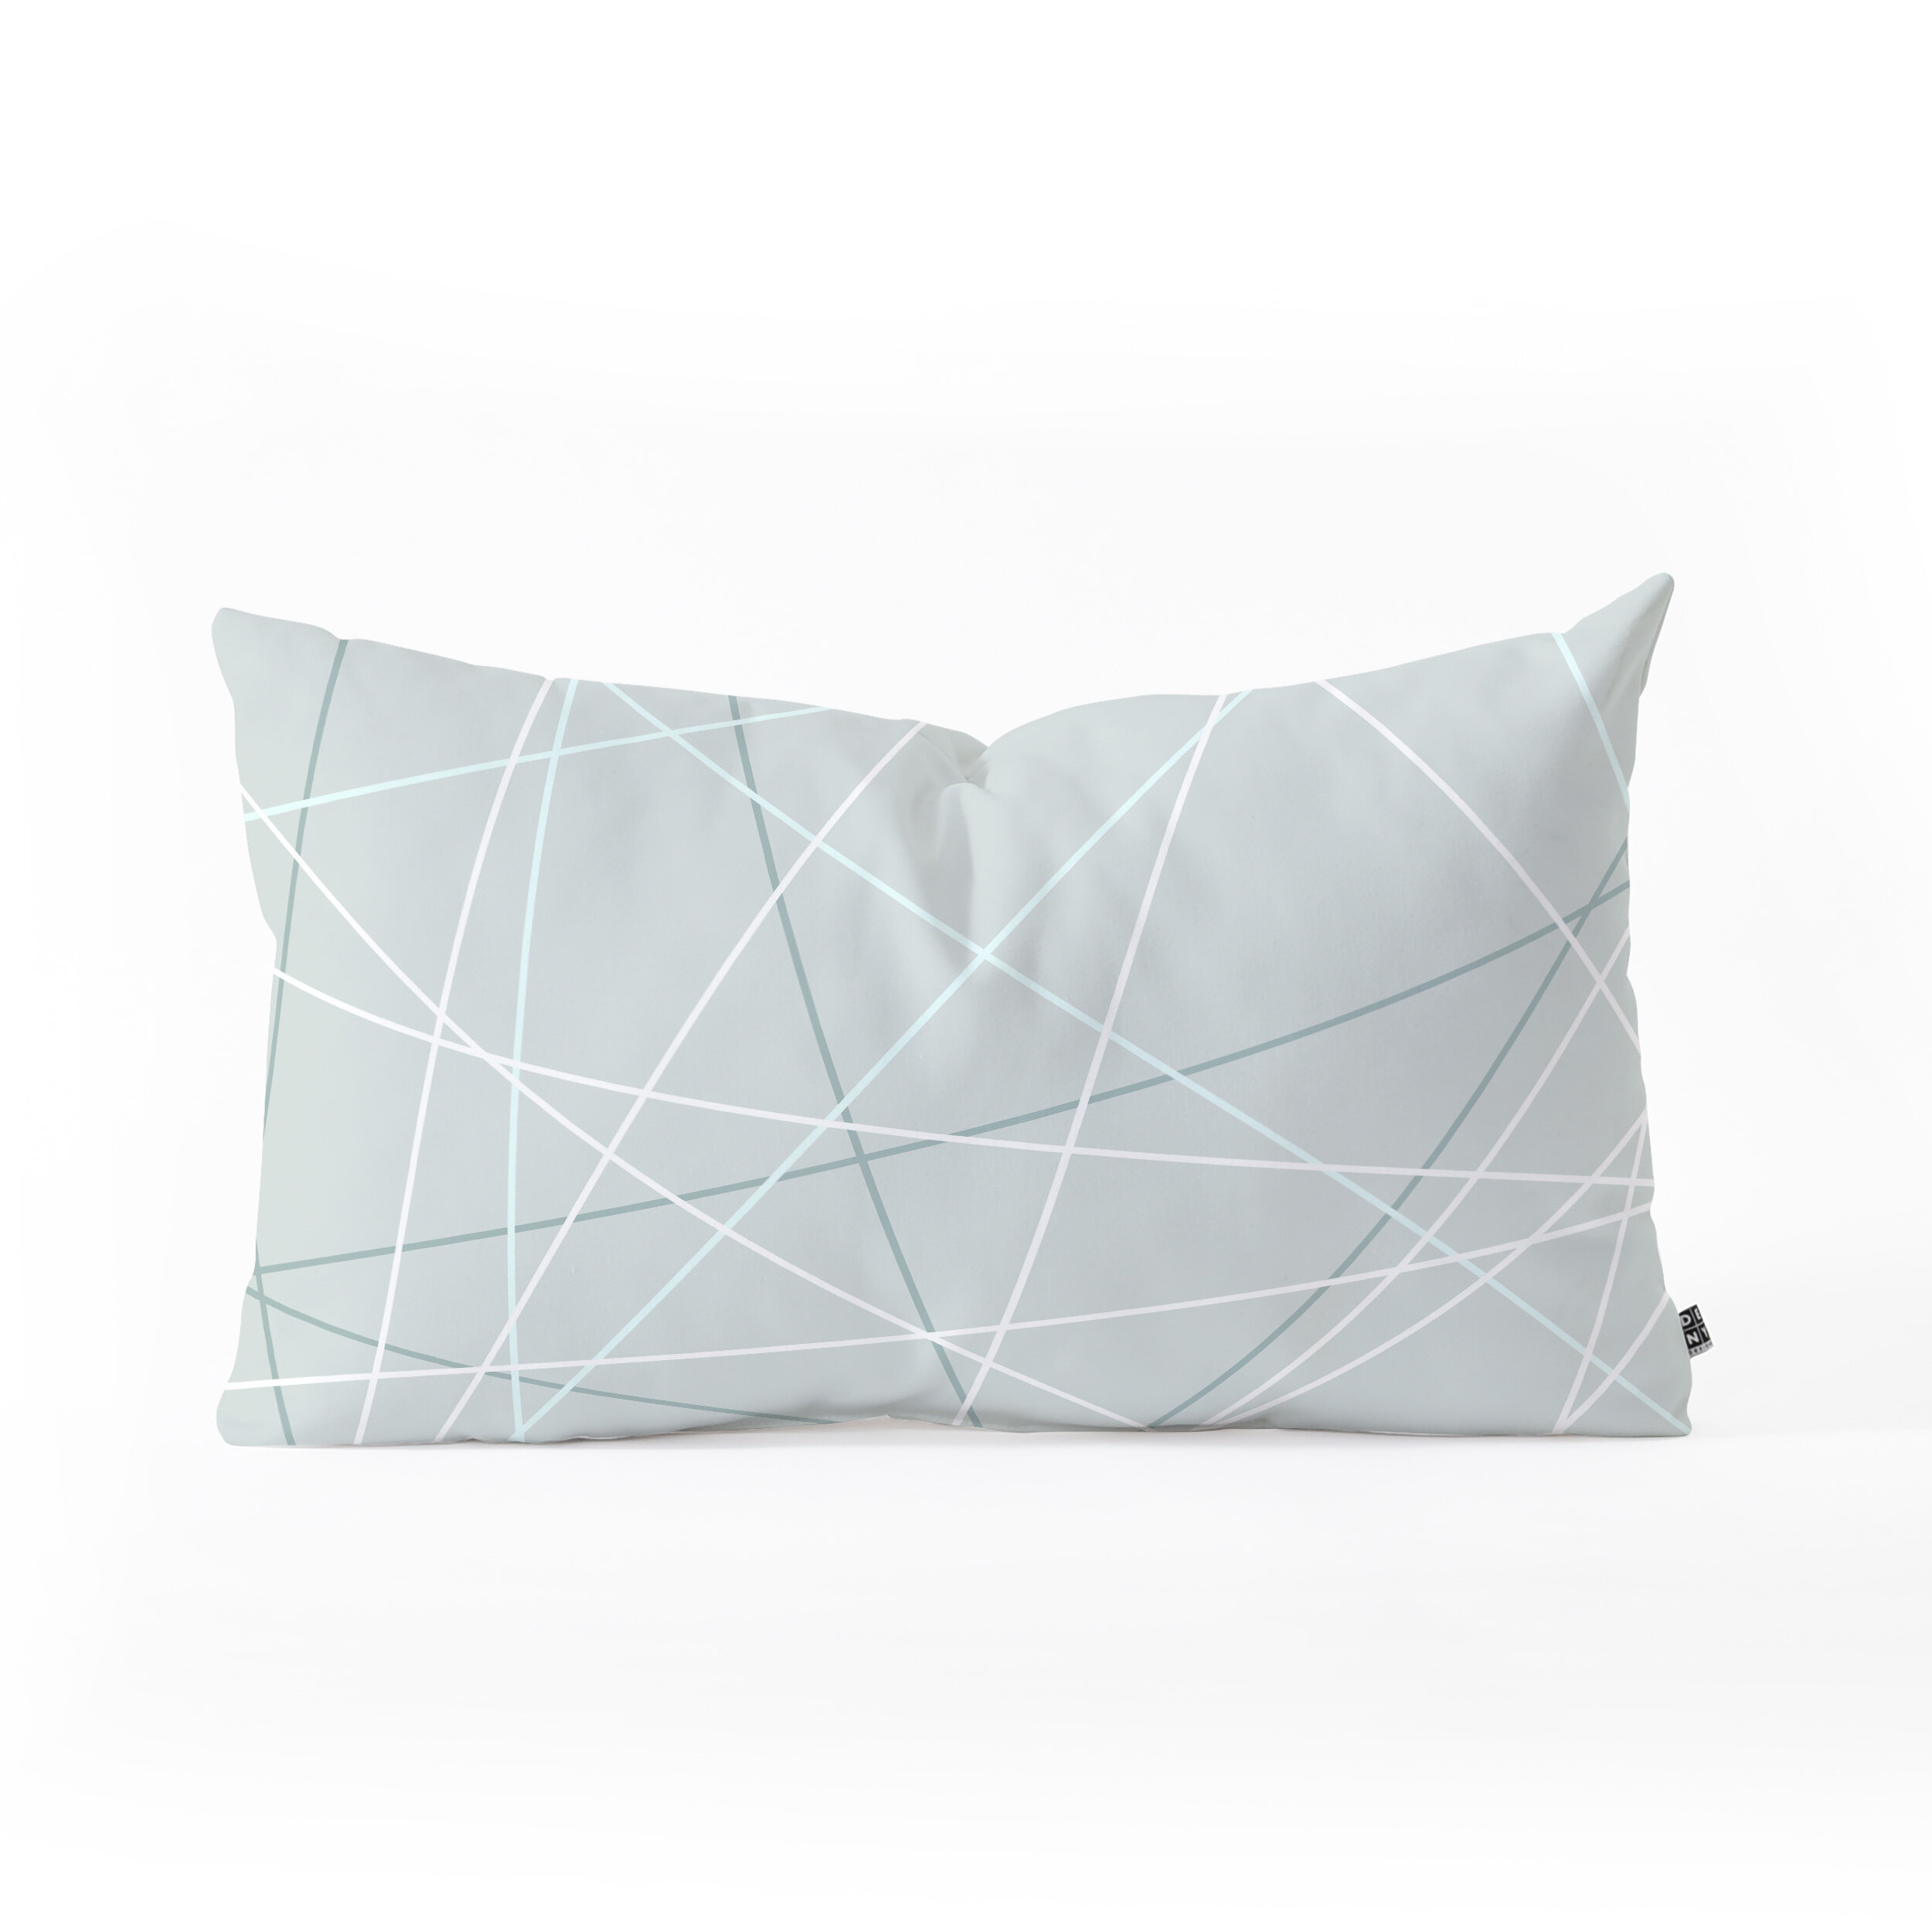 East Urban Home Mareike Boehmer Pastel Lines 2 Oblong Indoor Outdoor Lumbar Pillow Wayfair